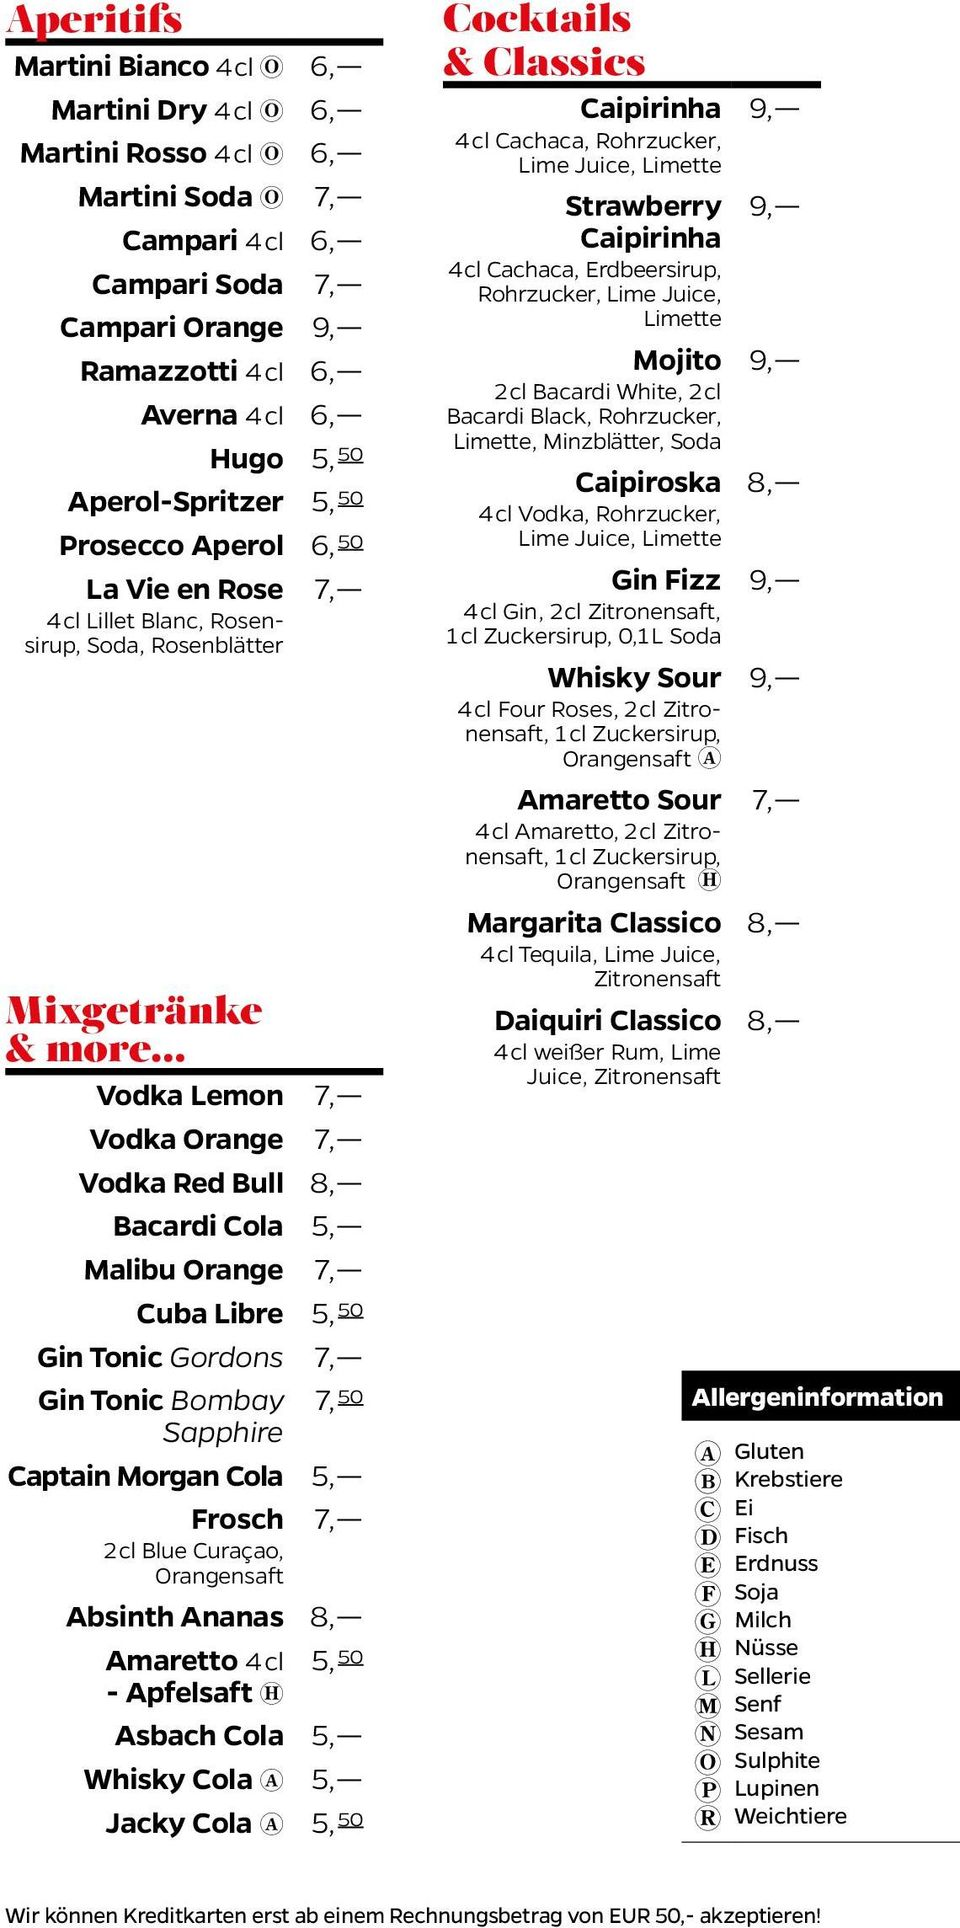 5, 50 Gin Tonic Gordons 7, Gin Tonic Bombay 7, 50 Sapphire Captain Morgan Cola 5, Frosch 7, 2 cl Blue Curaçao, Orangensaft Absinth Ananas Amaretto 4 cl 5, 50 - Apfelsaft ( Asbach Cola 5, Whisky Cola!